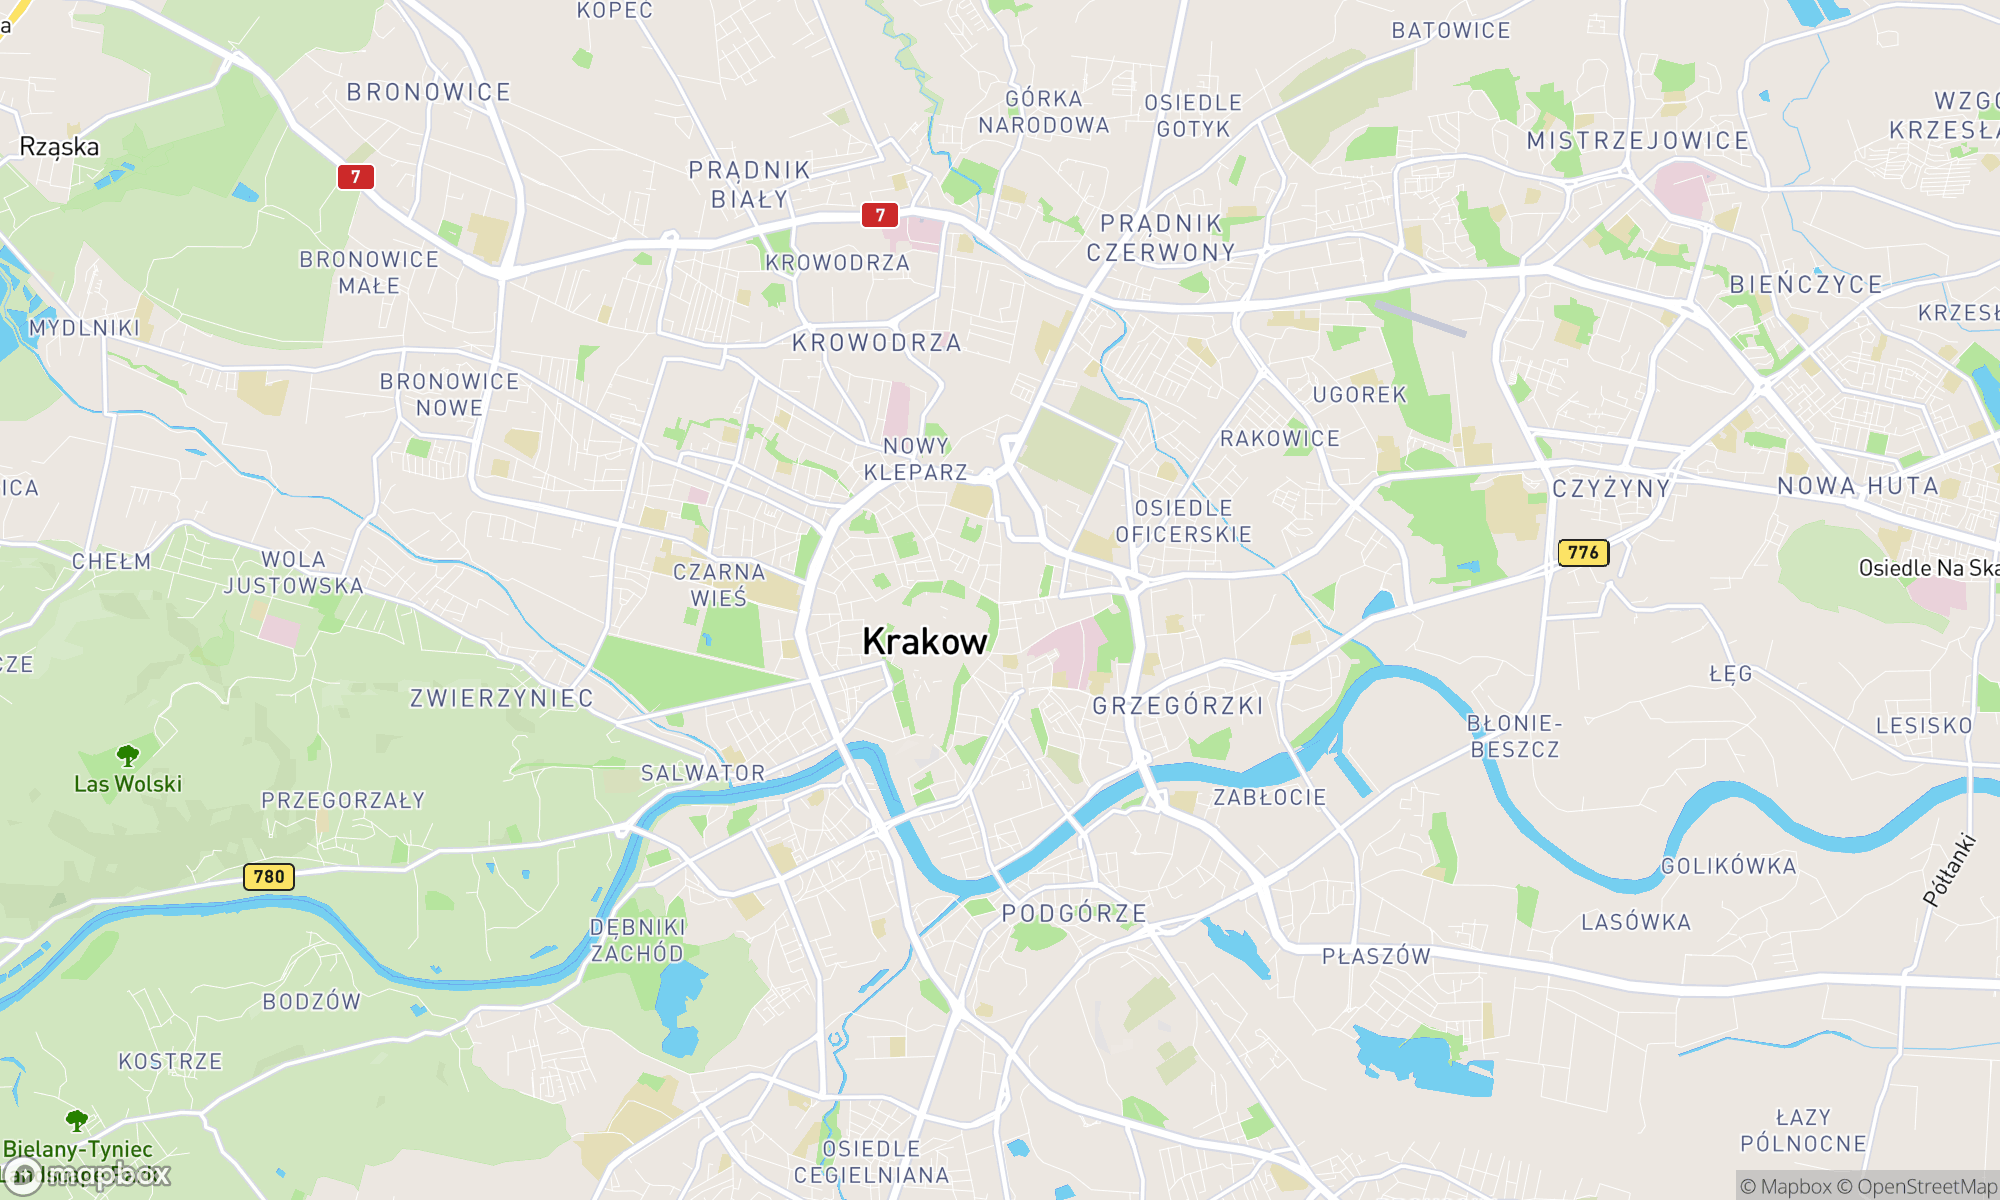 Map of Krakow area